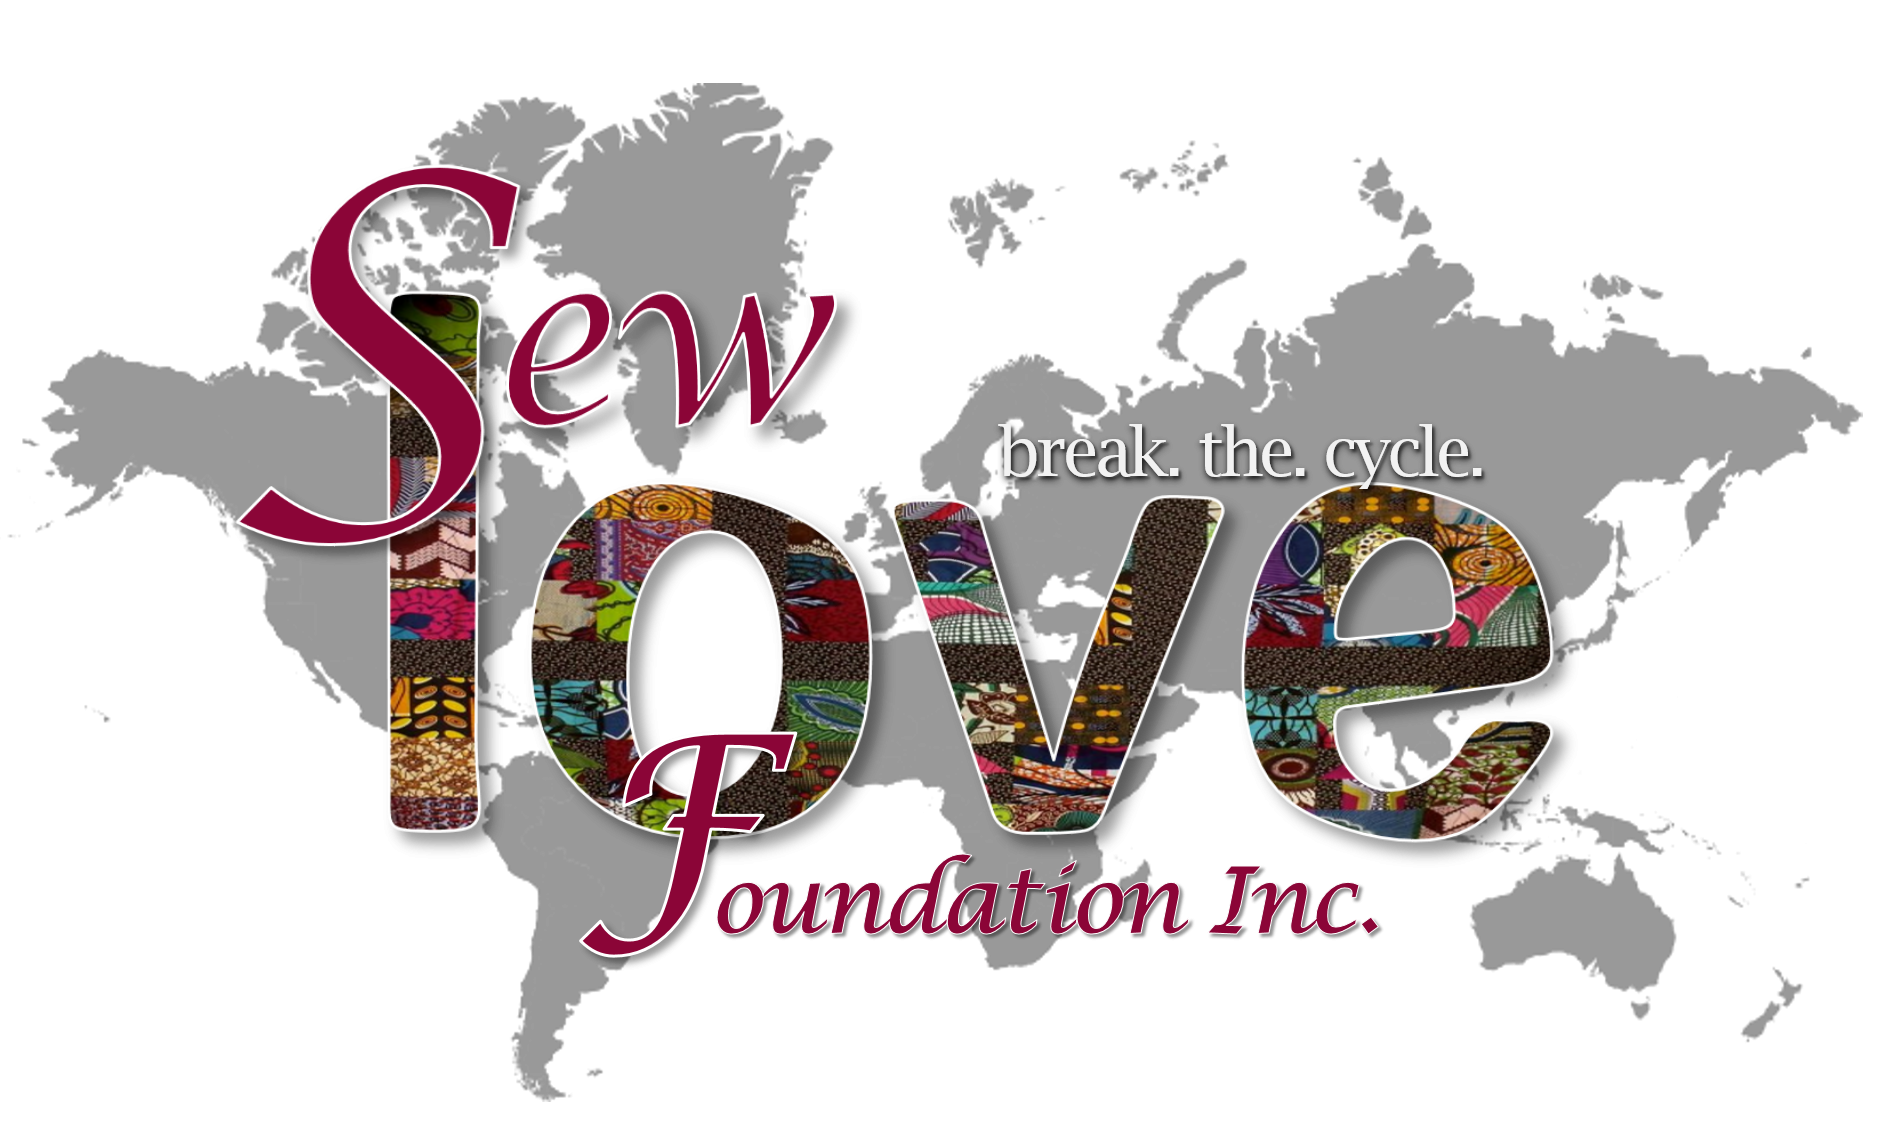 Missions clipart family love. Sewloveworld sew foundation inc